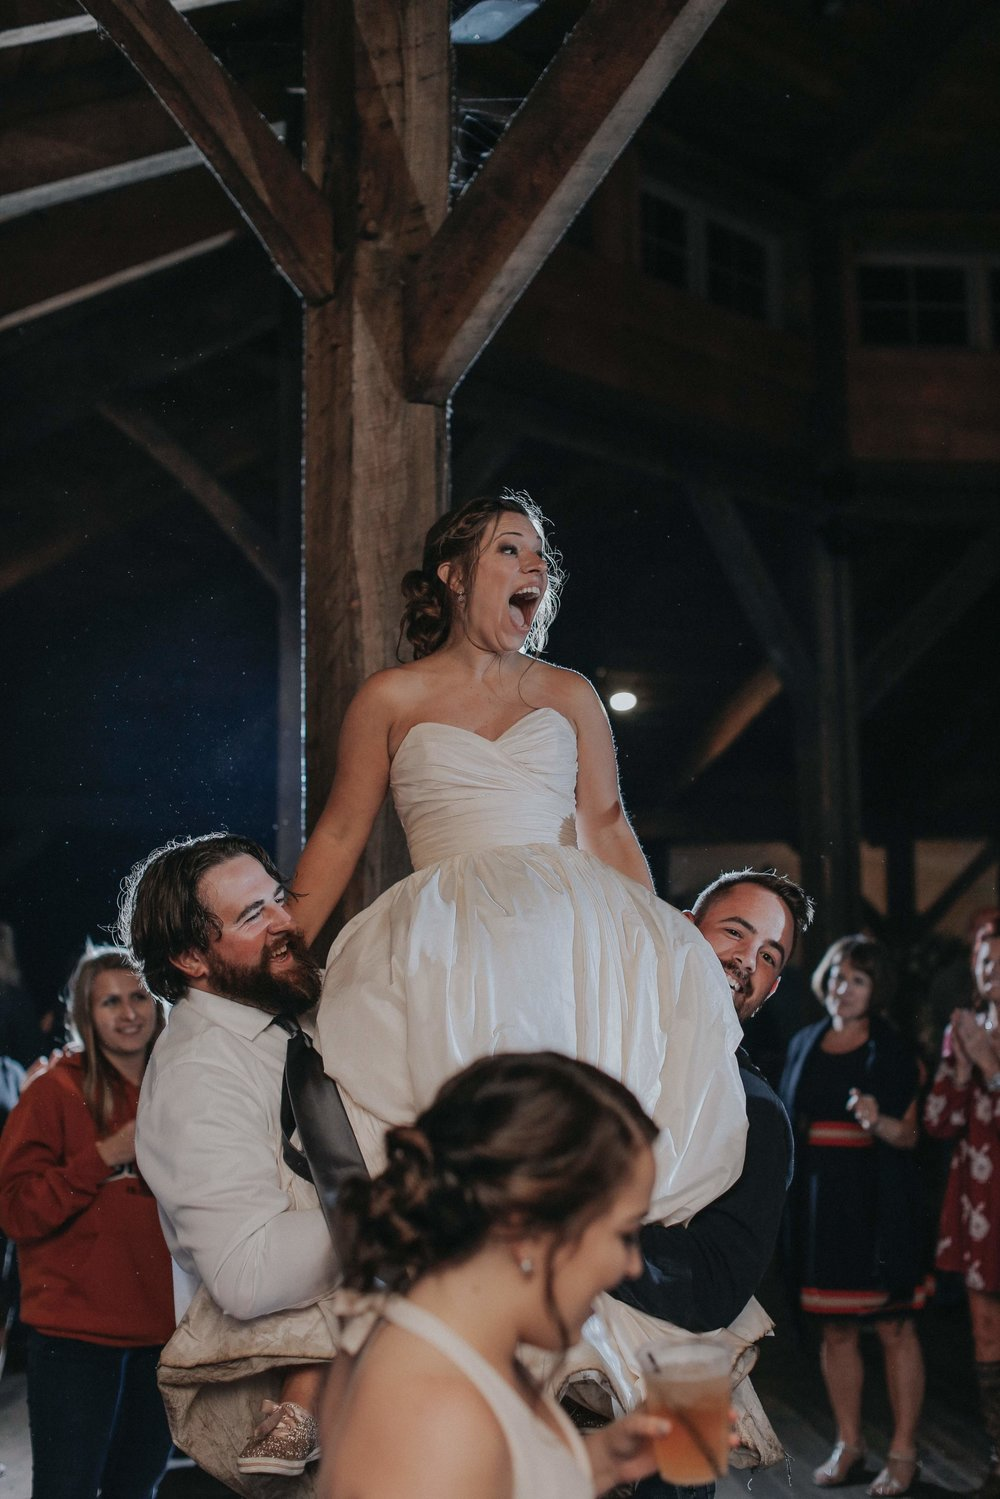 Bride celebrating at wedding reception at rustic wedding in Farmington, PA planned by Exhale Events. Find more wedding inspiration at exhale-events.com!